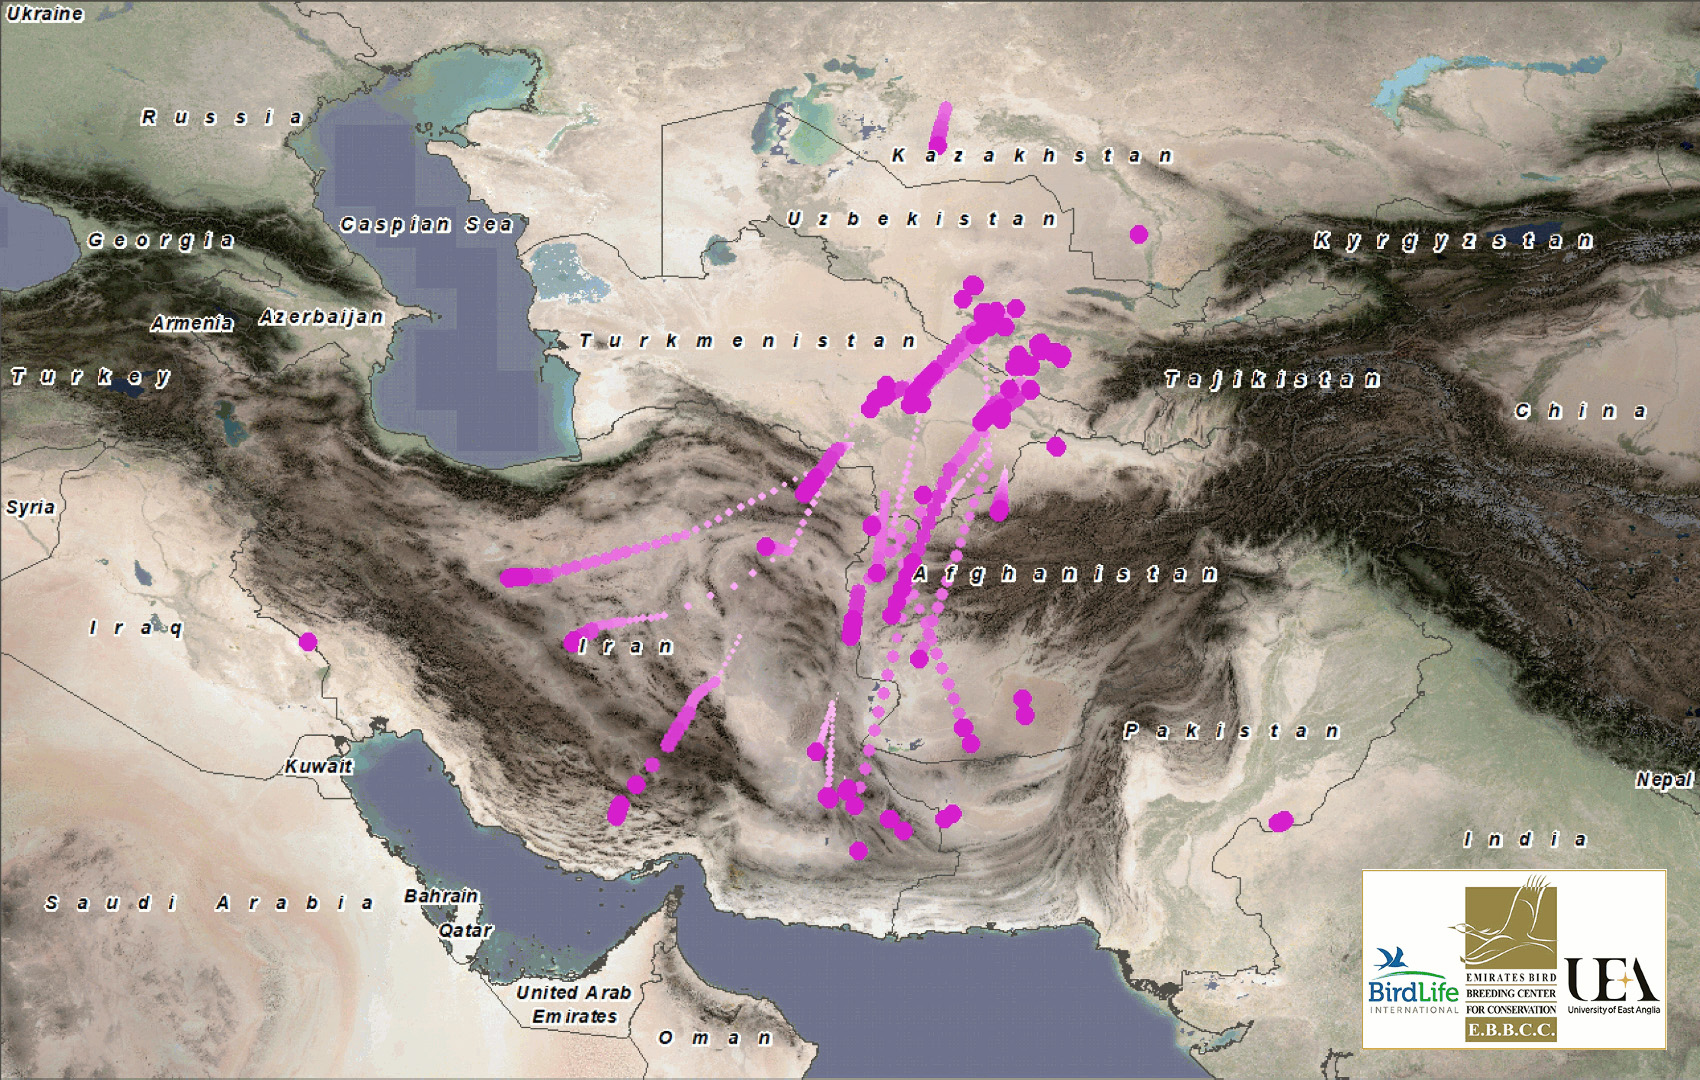 Tracking wild Asian houbara during migration (Credits Daniel Salliss & R. J. Burnside)